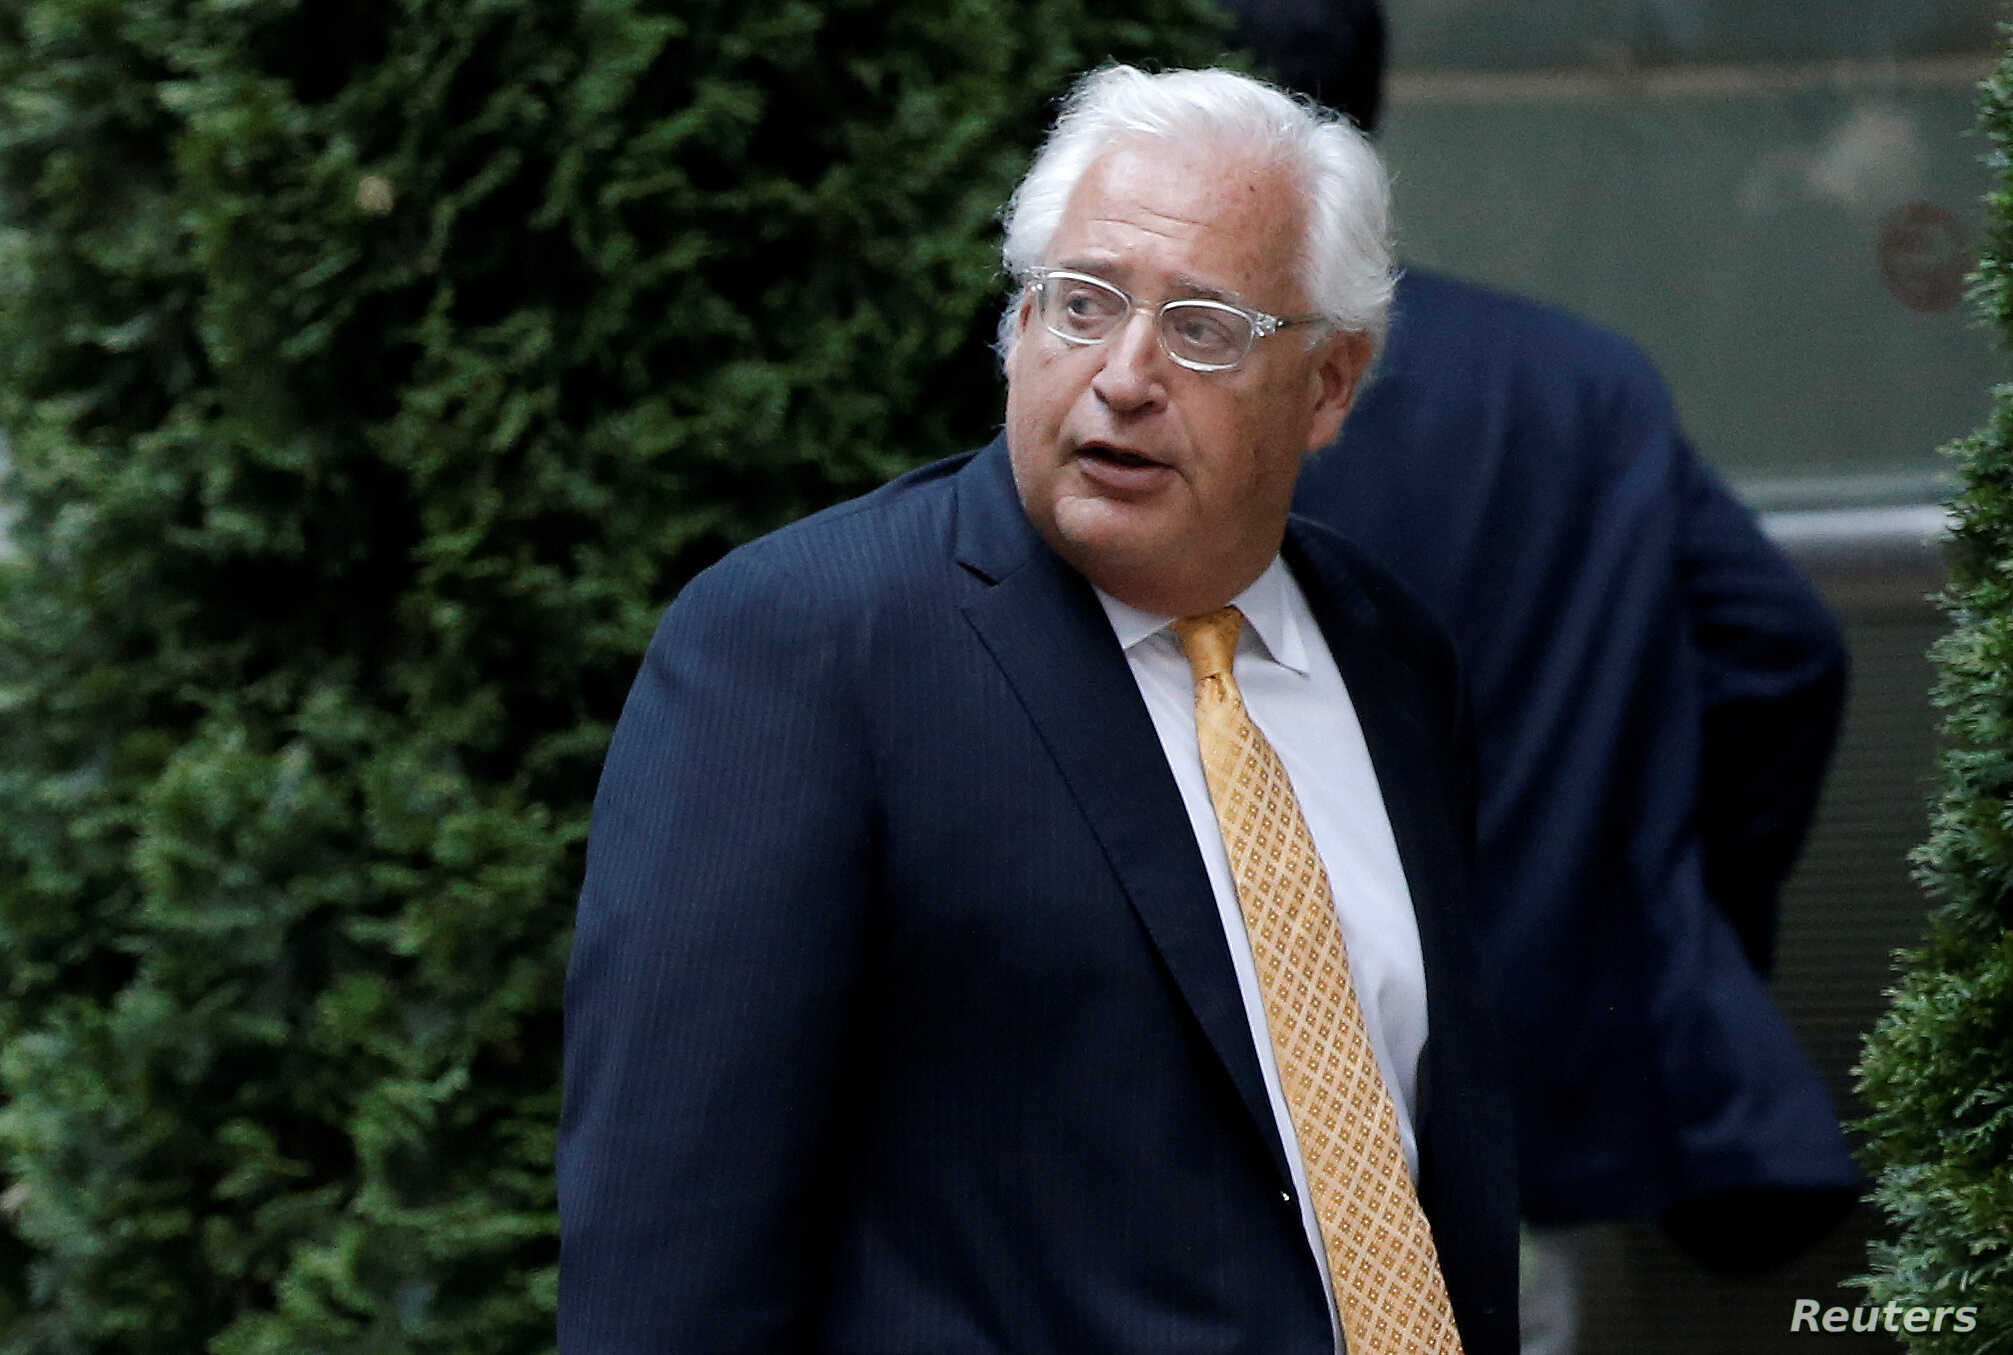 FILE - Attorney David Friedman arrives at a private fundraiser for then-Republican presidential candidate Donald Trump in the Manhattan borough of New York City, June 21, 2016. Friedman is U.S. President Donald Trump's designated Ambassador to Israel...